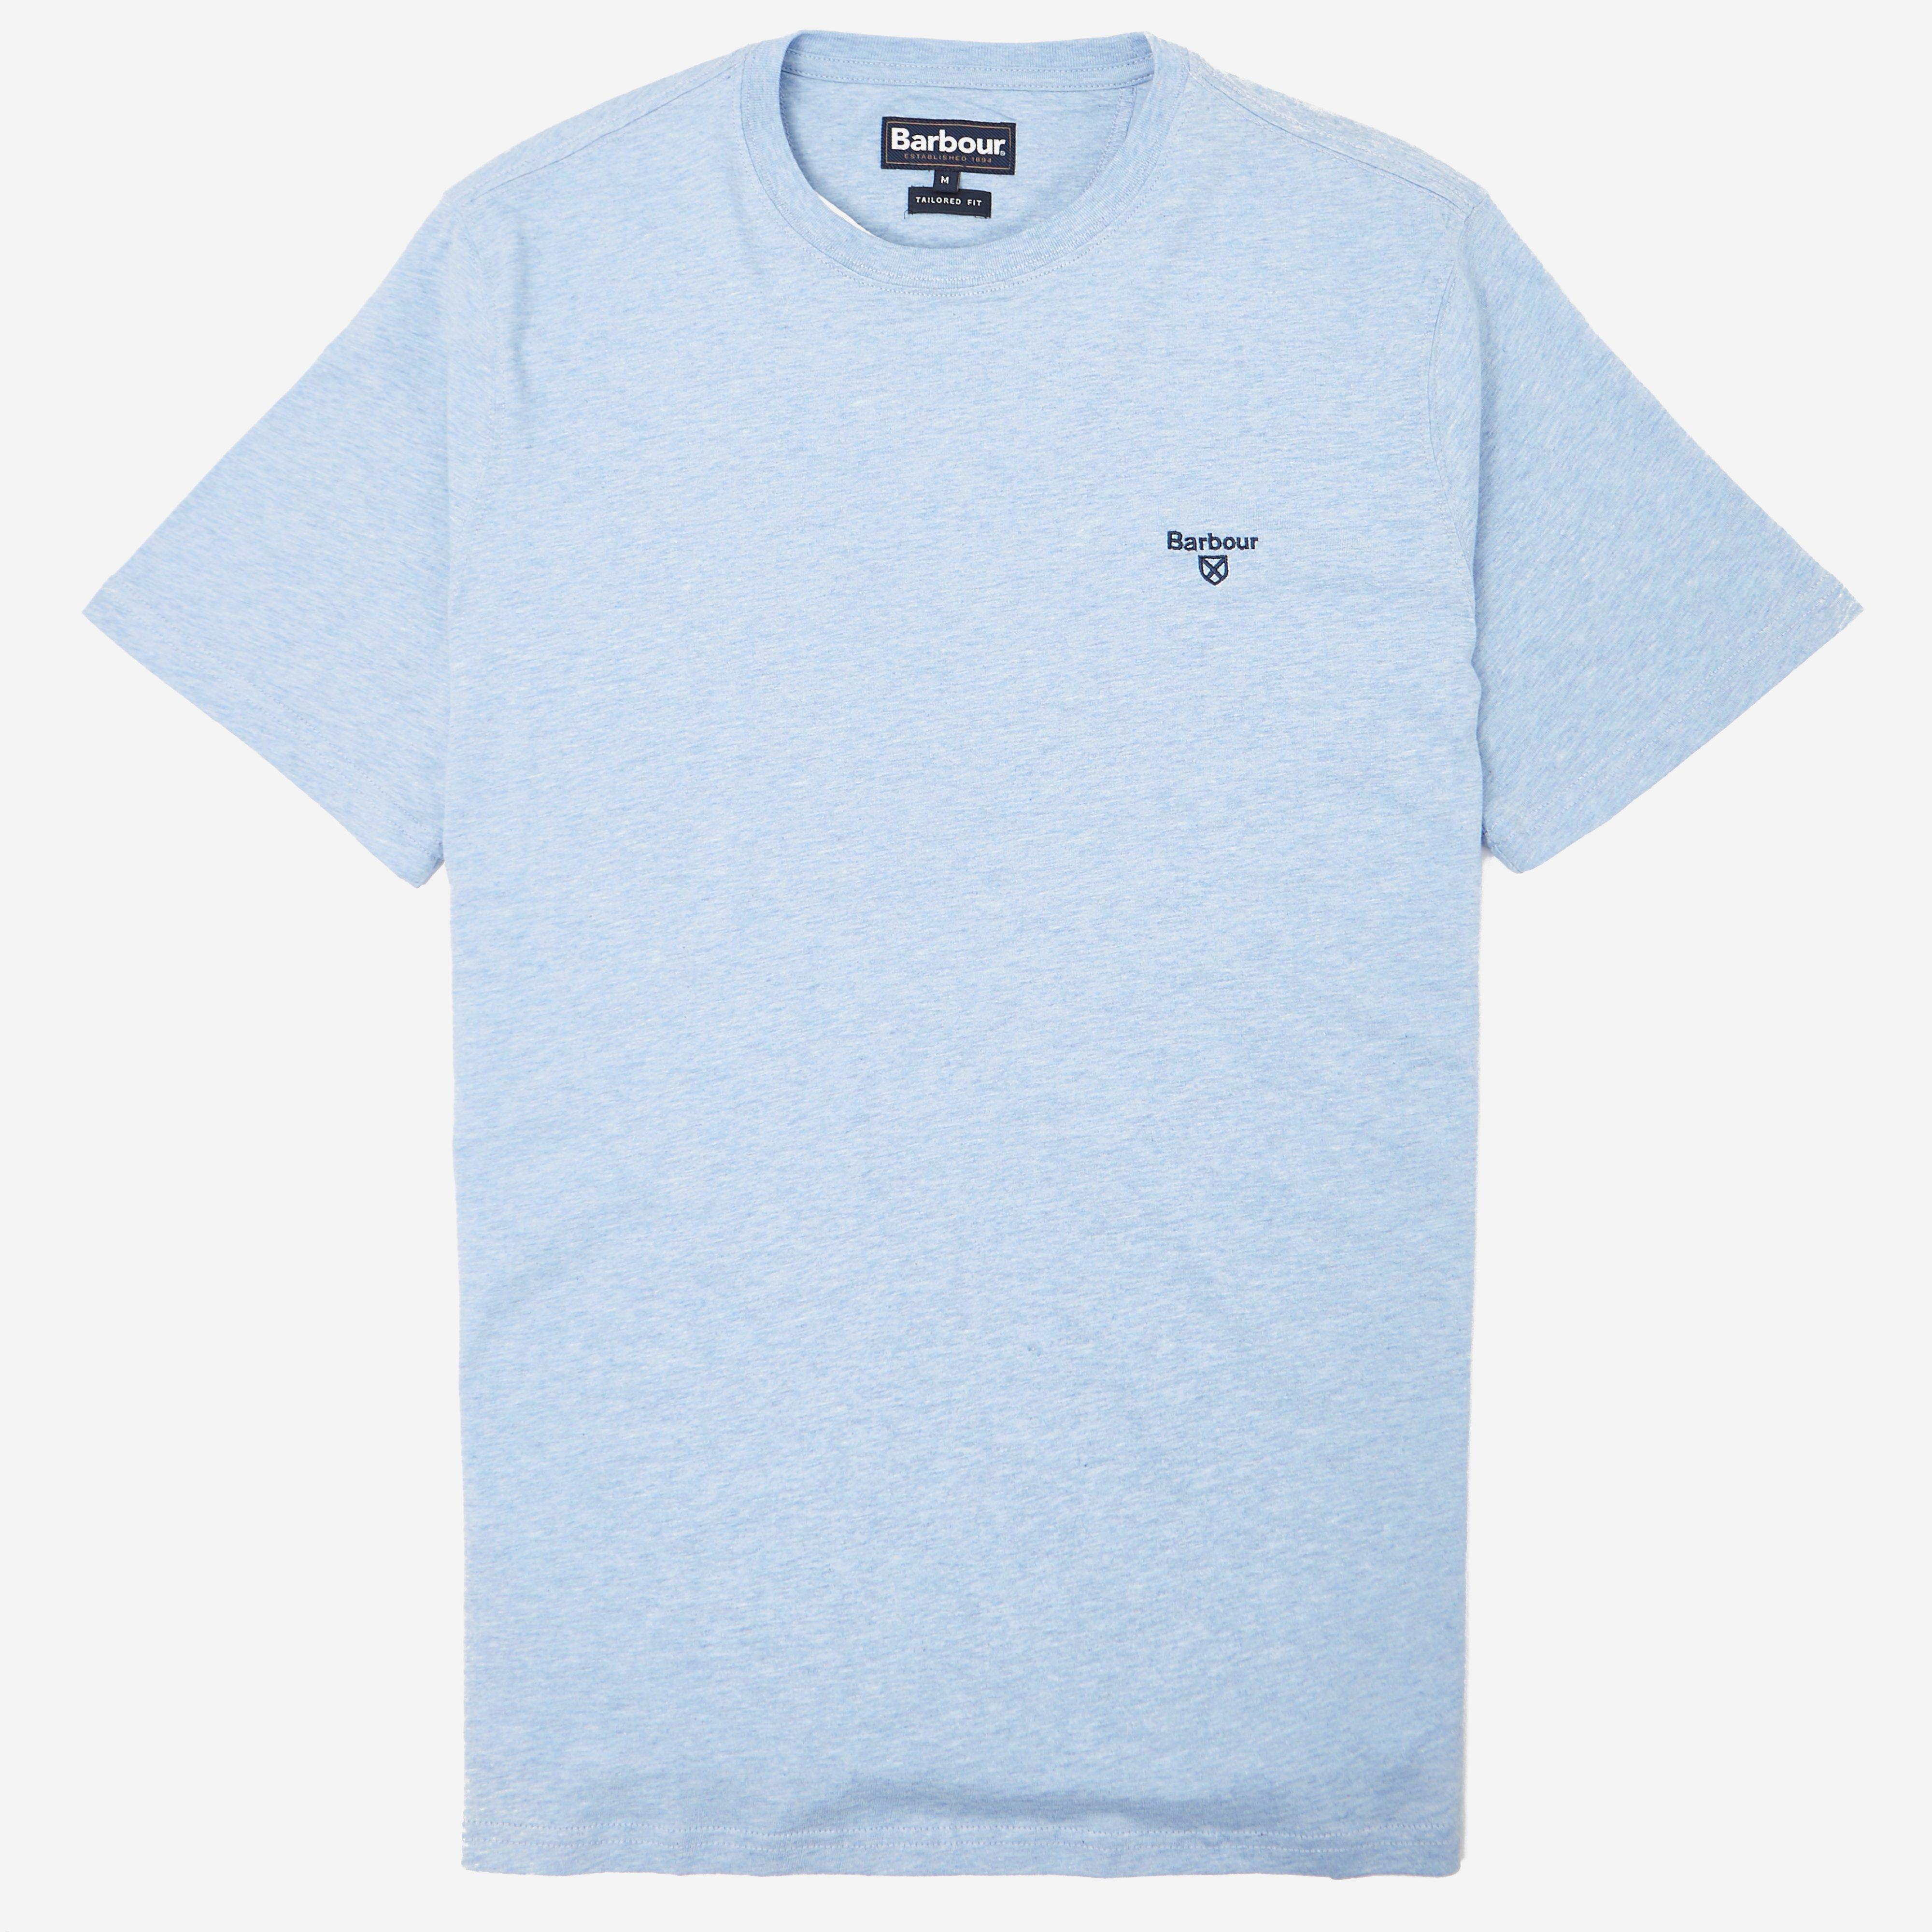 Barbour Cove T-shirt